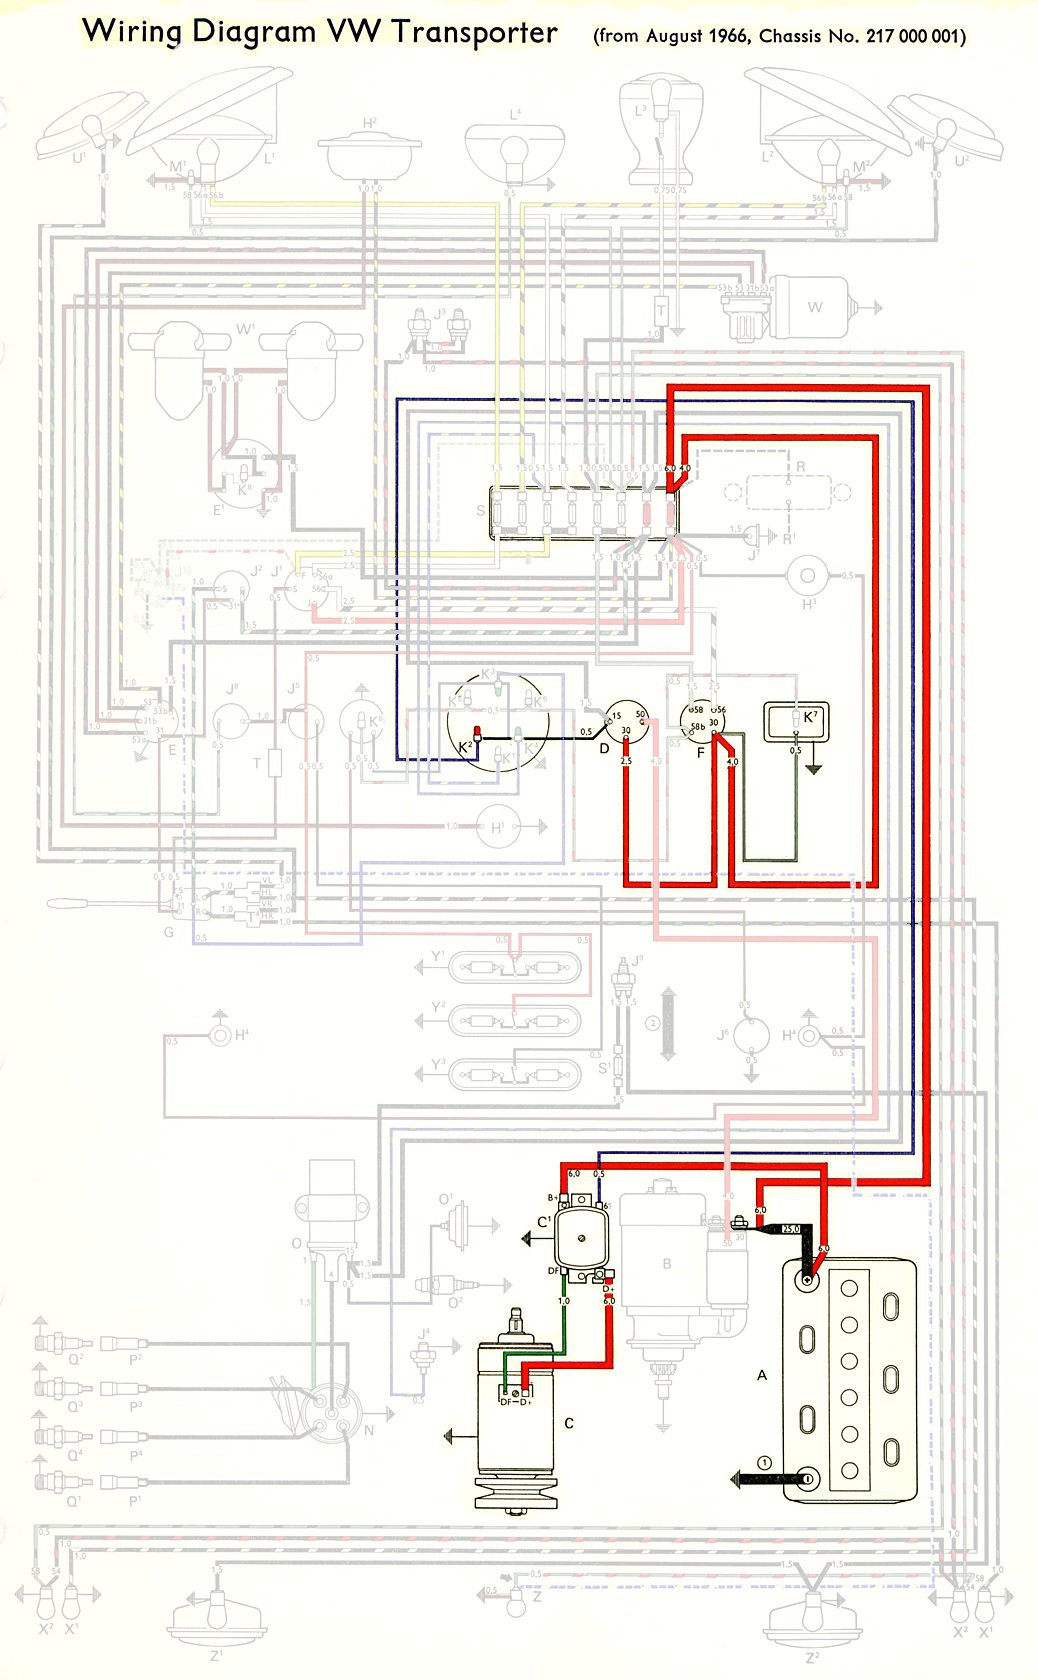 ambulance wiring diagram with Wiringt2 on Truck inverters besides 7C 7Ckraft Mi org 7CStarsCars 18 further Fire Engine 28 Ladder Truck as well Wiringt2 in addition Wiringt2.